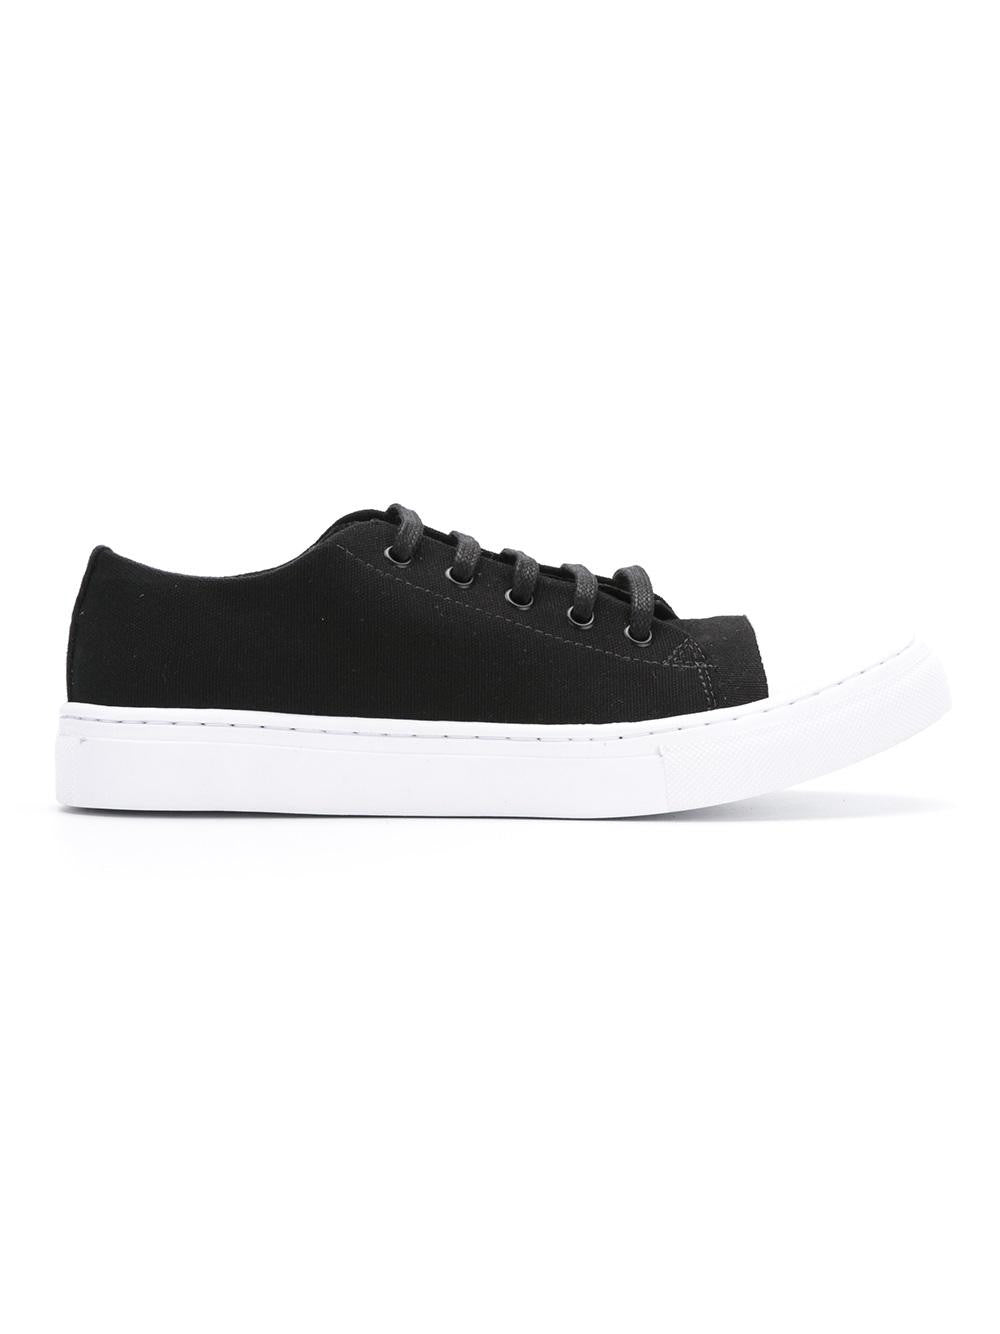 Black Lace-up Sneakers | Vanilla